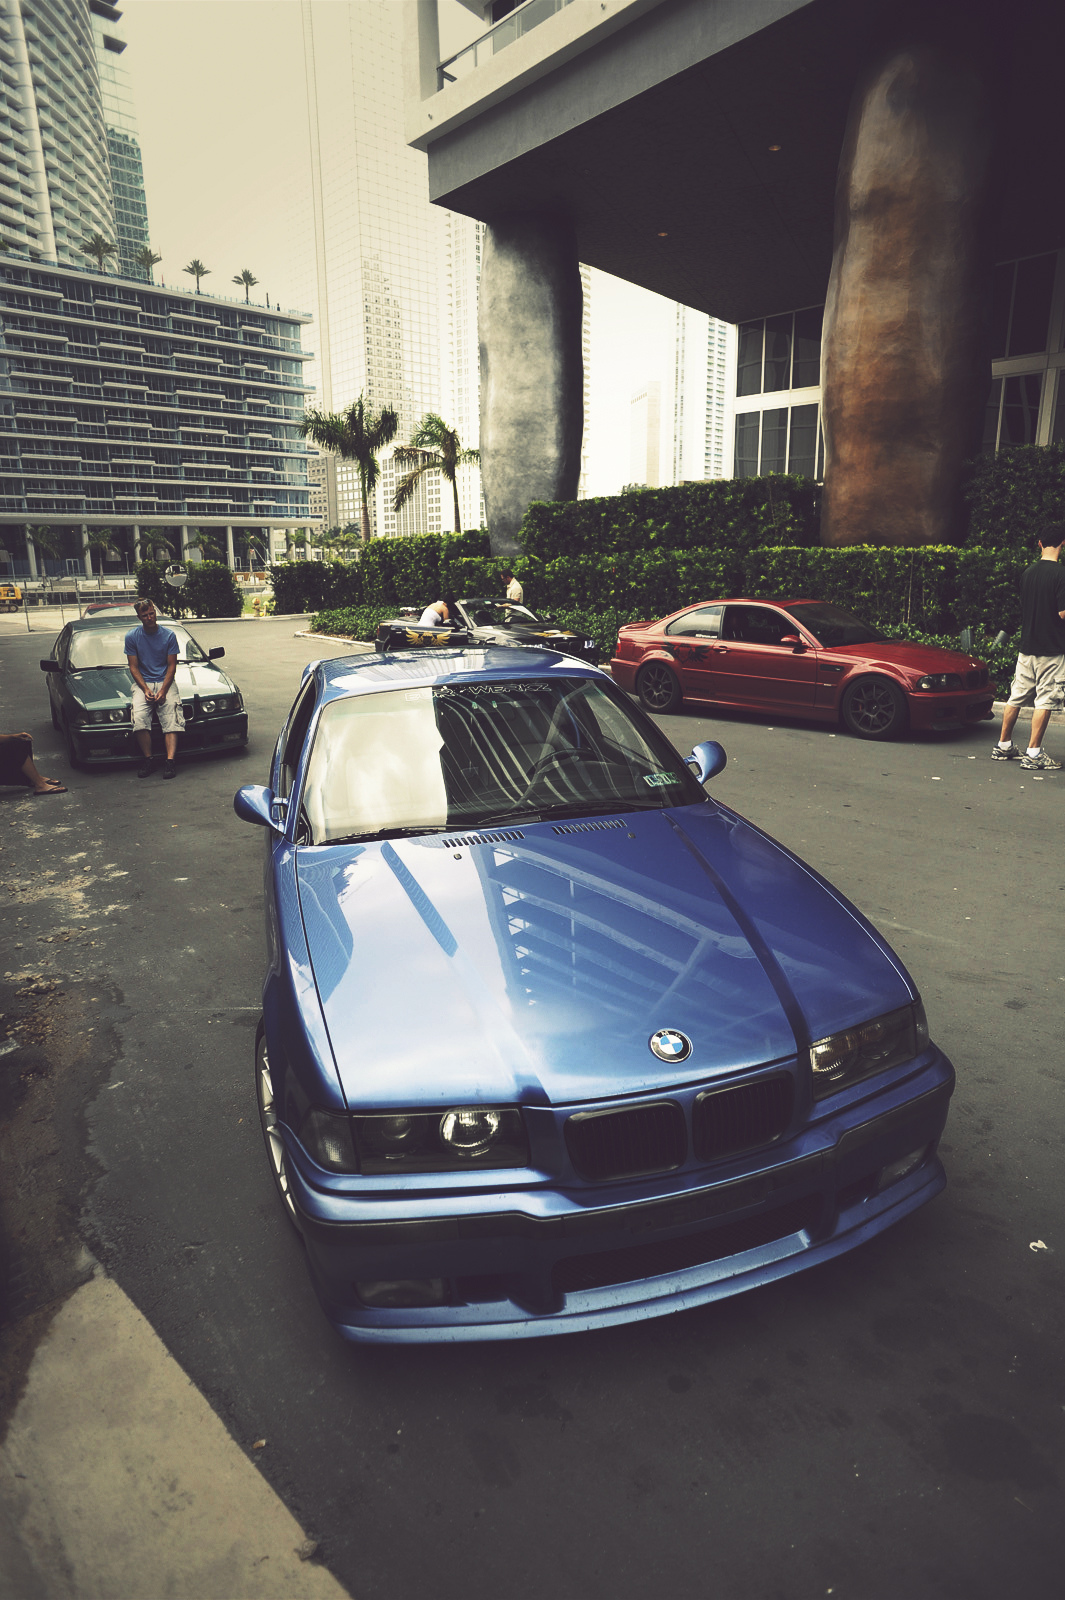 Does Anyone Have Any E36 M3 Wall Papers For An Iphone